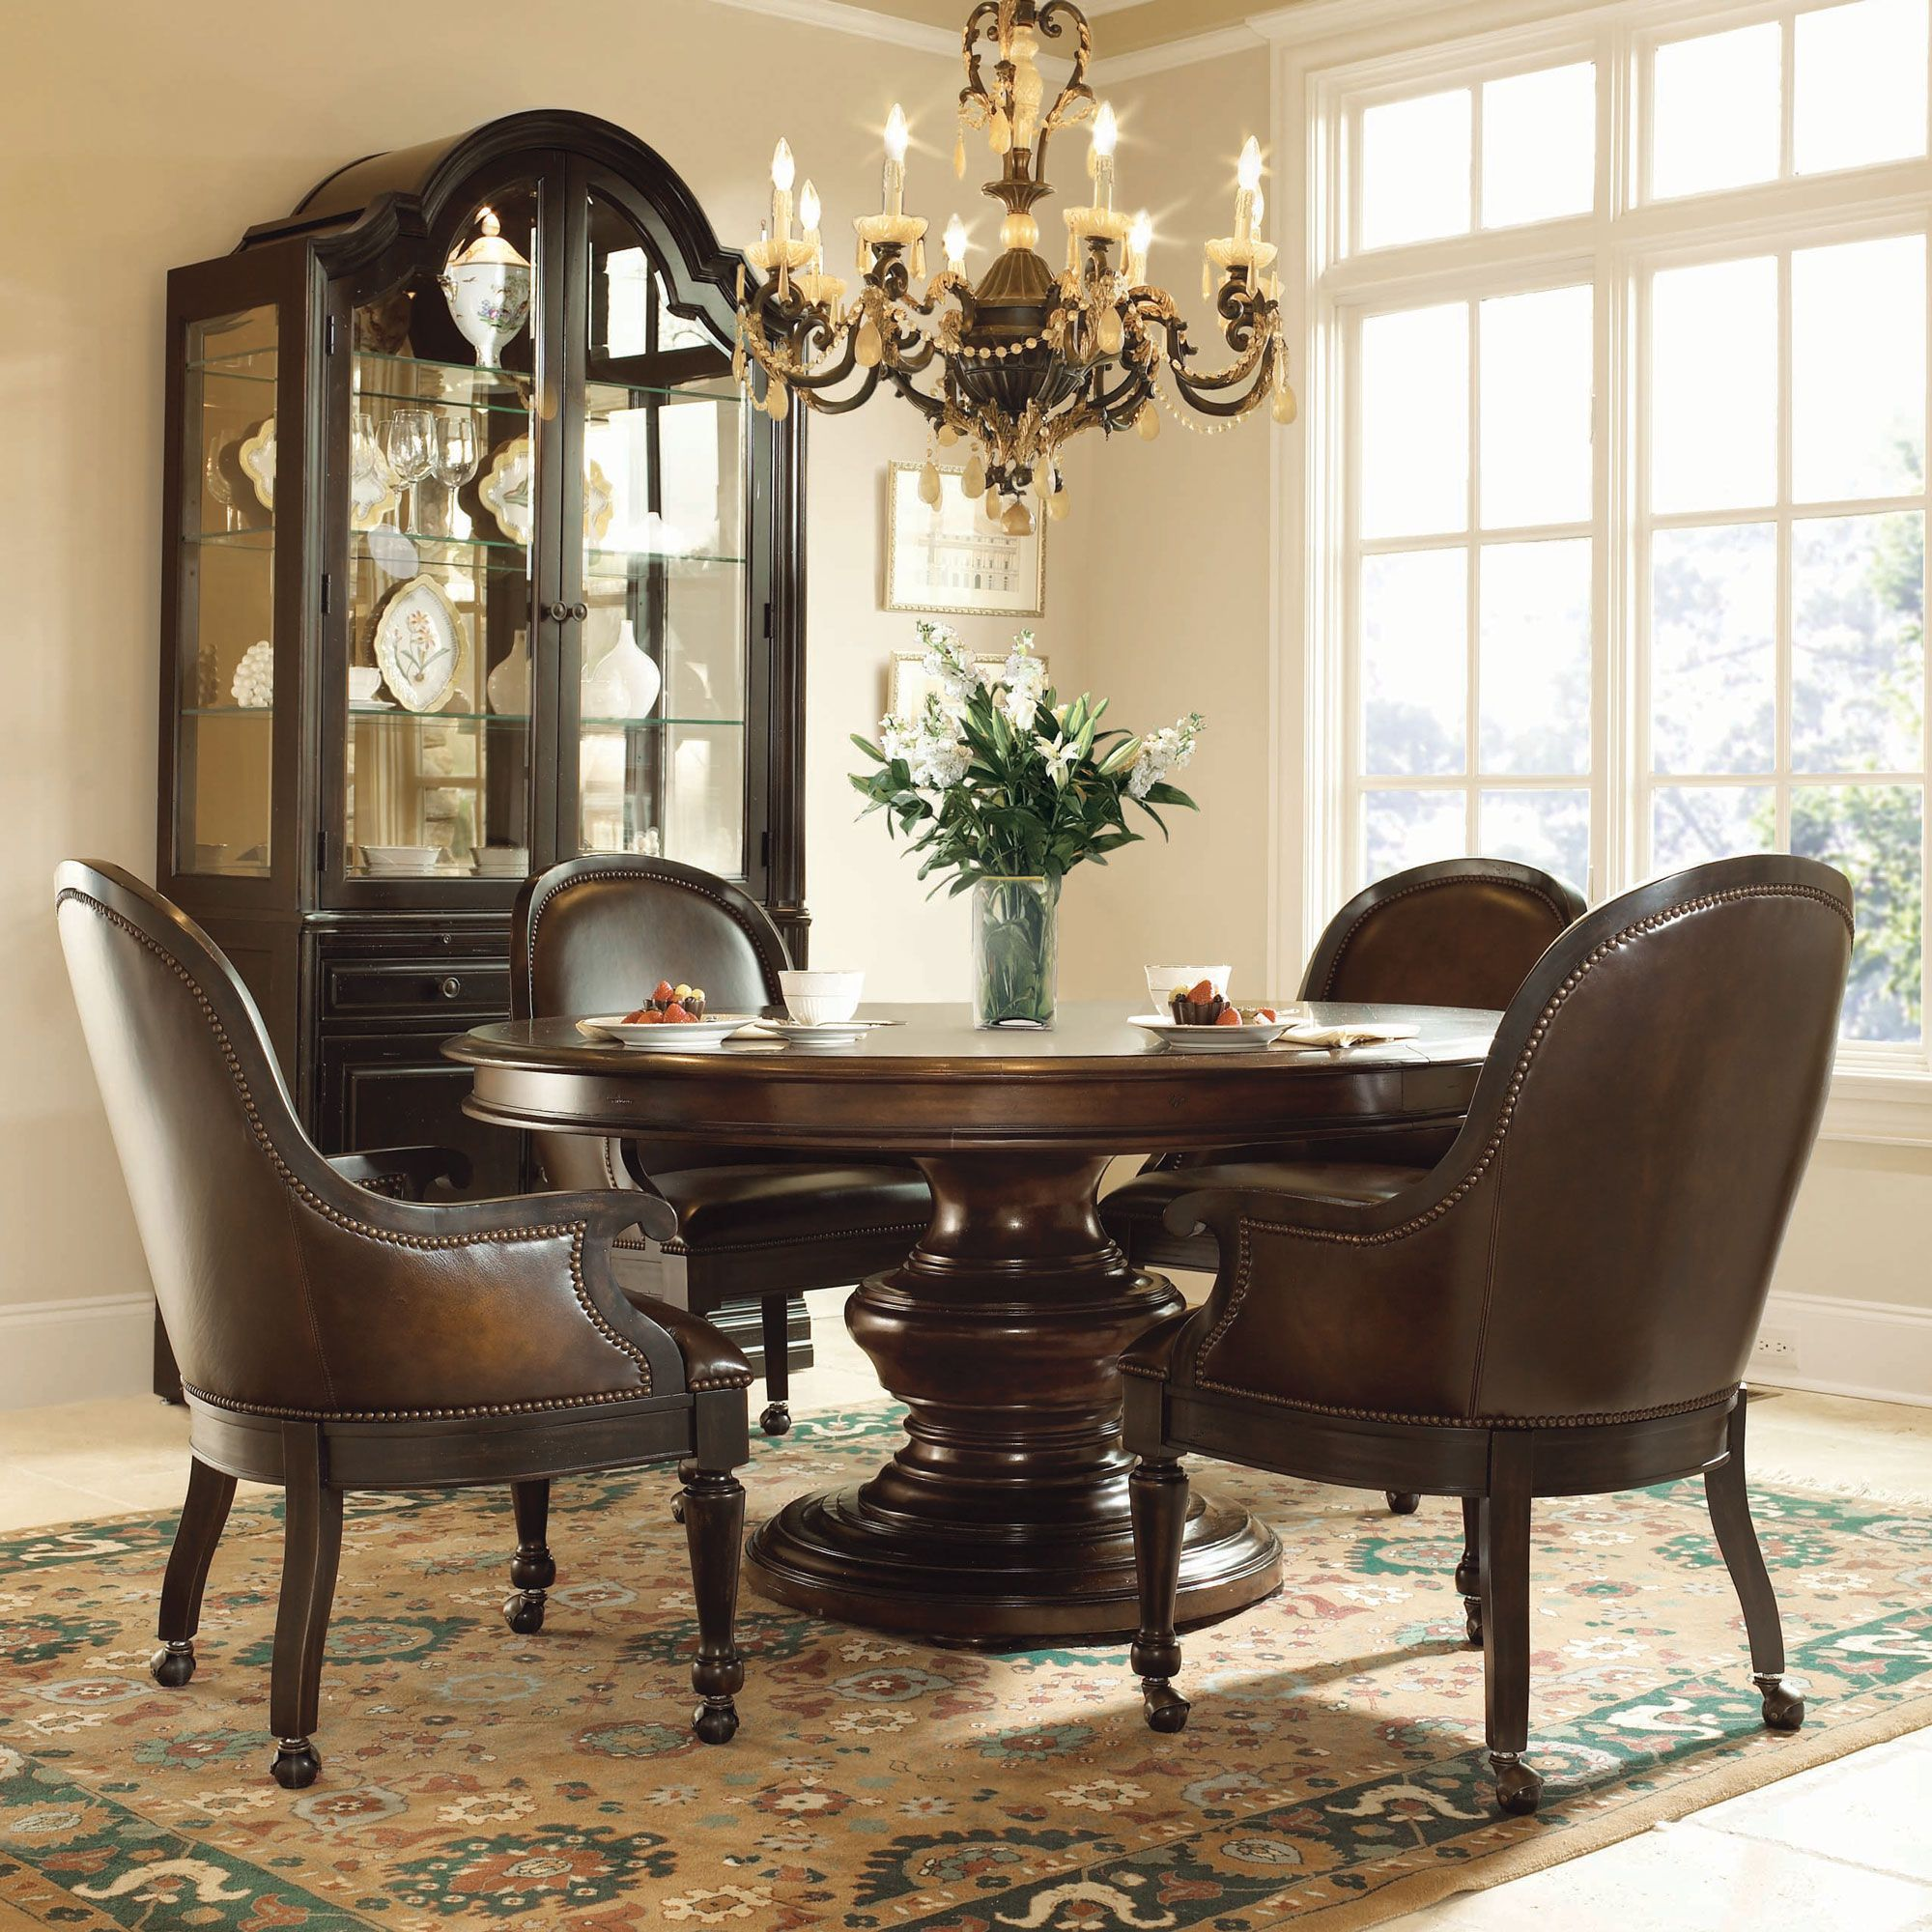 Best Kitchen Gallery: Bernhardt Normandie Manor 5pc Round Dining Room Set With Large of Dining Chairs With Casters  on rachelxblog.com